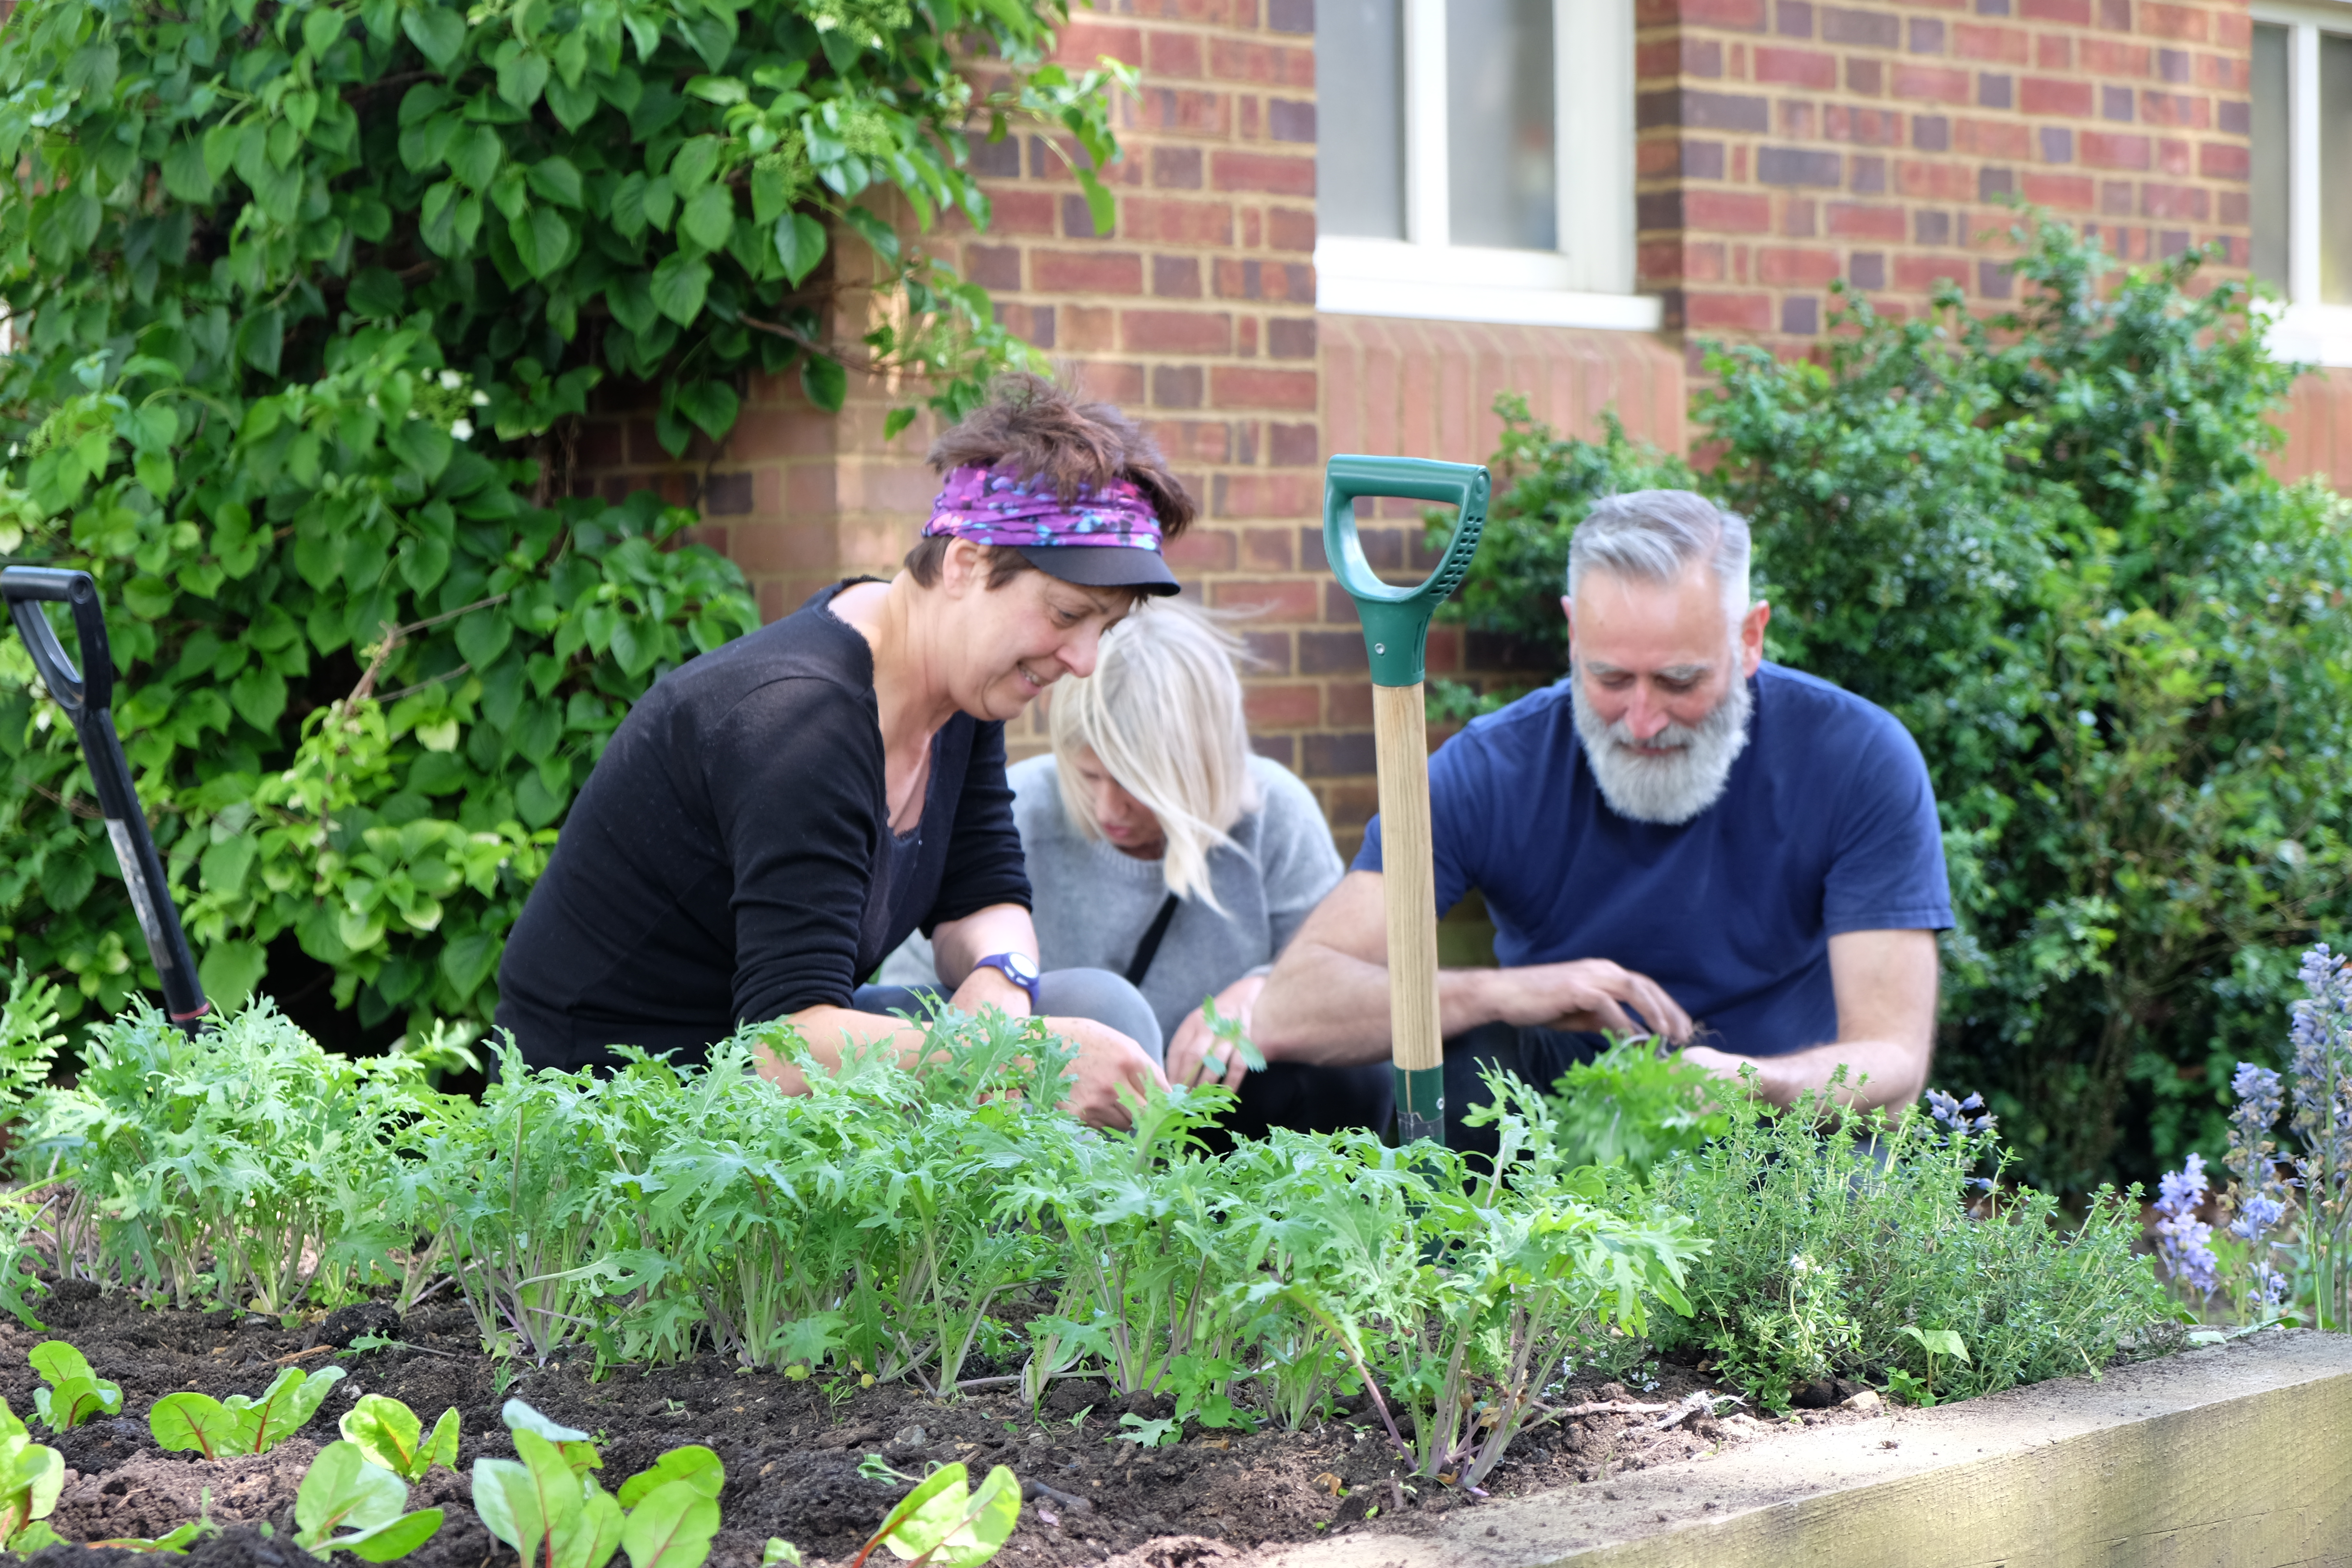 Amanda, Dee and David sorting the kale (3)